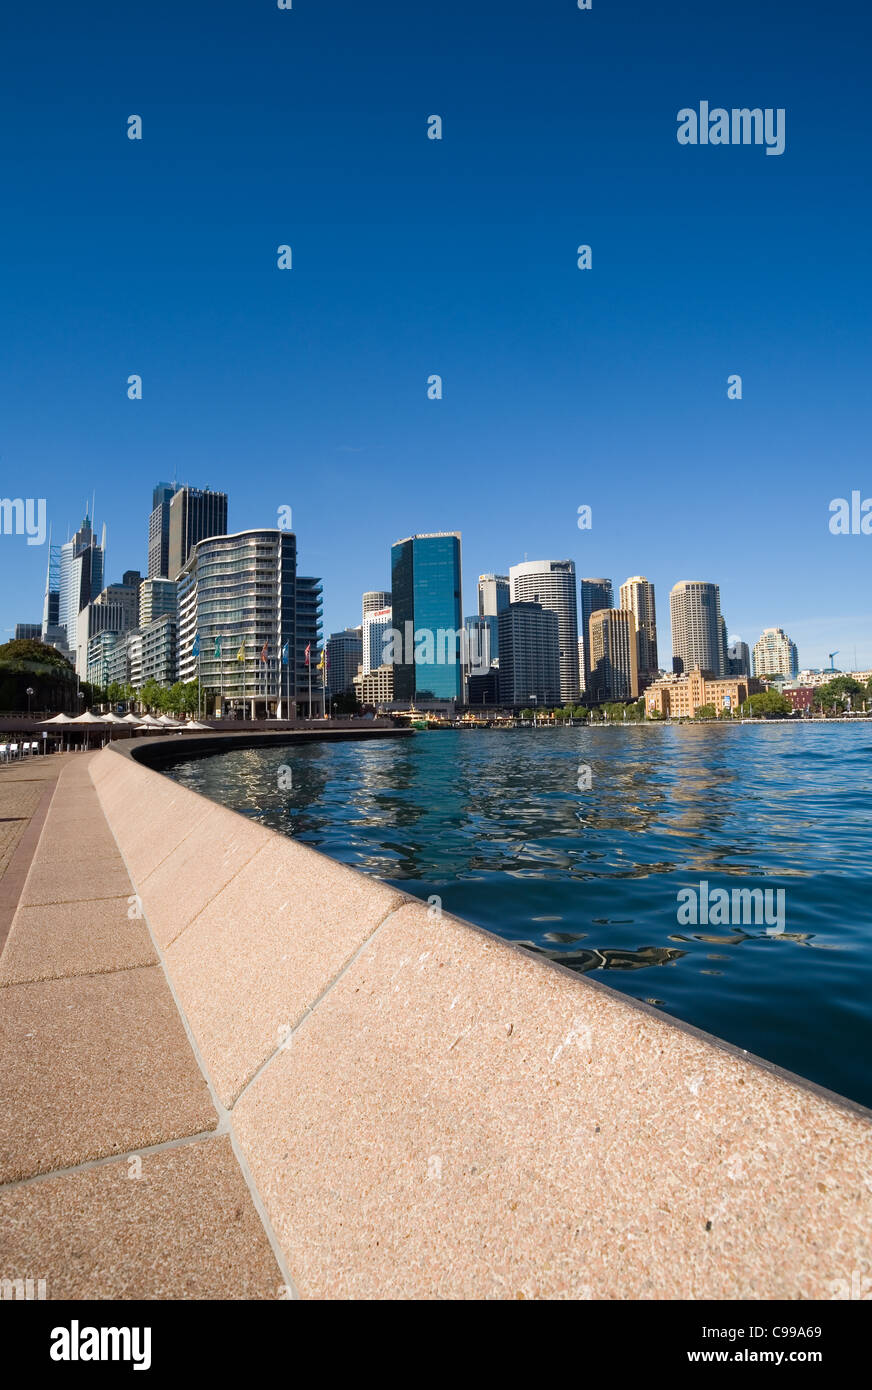 View along Sydney Cove waterfront towards Circular Quay and the city skyline. Sydney, New South Wales, Australia - Stock Image